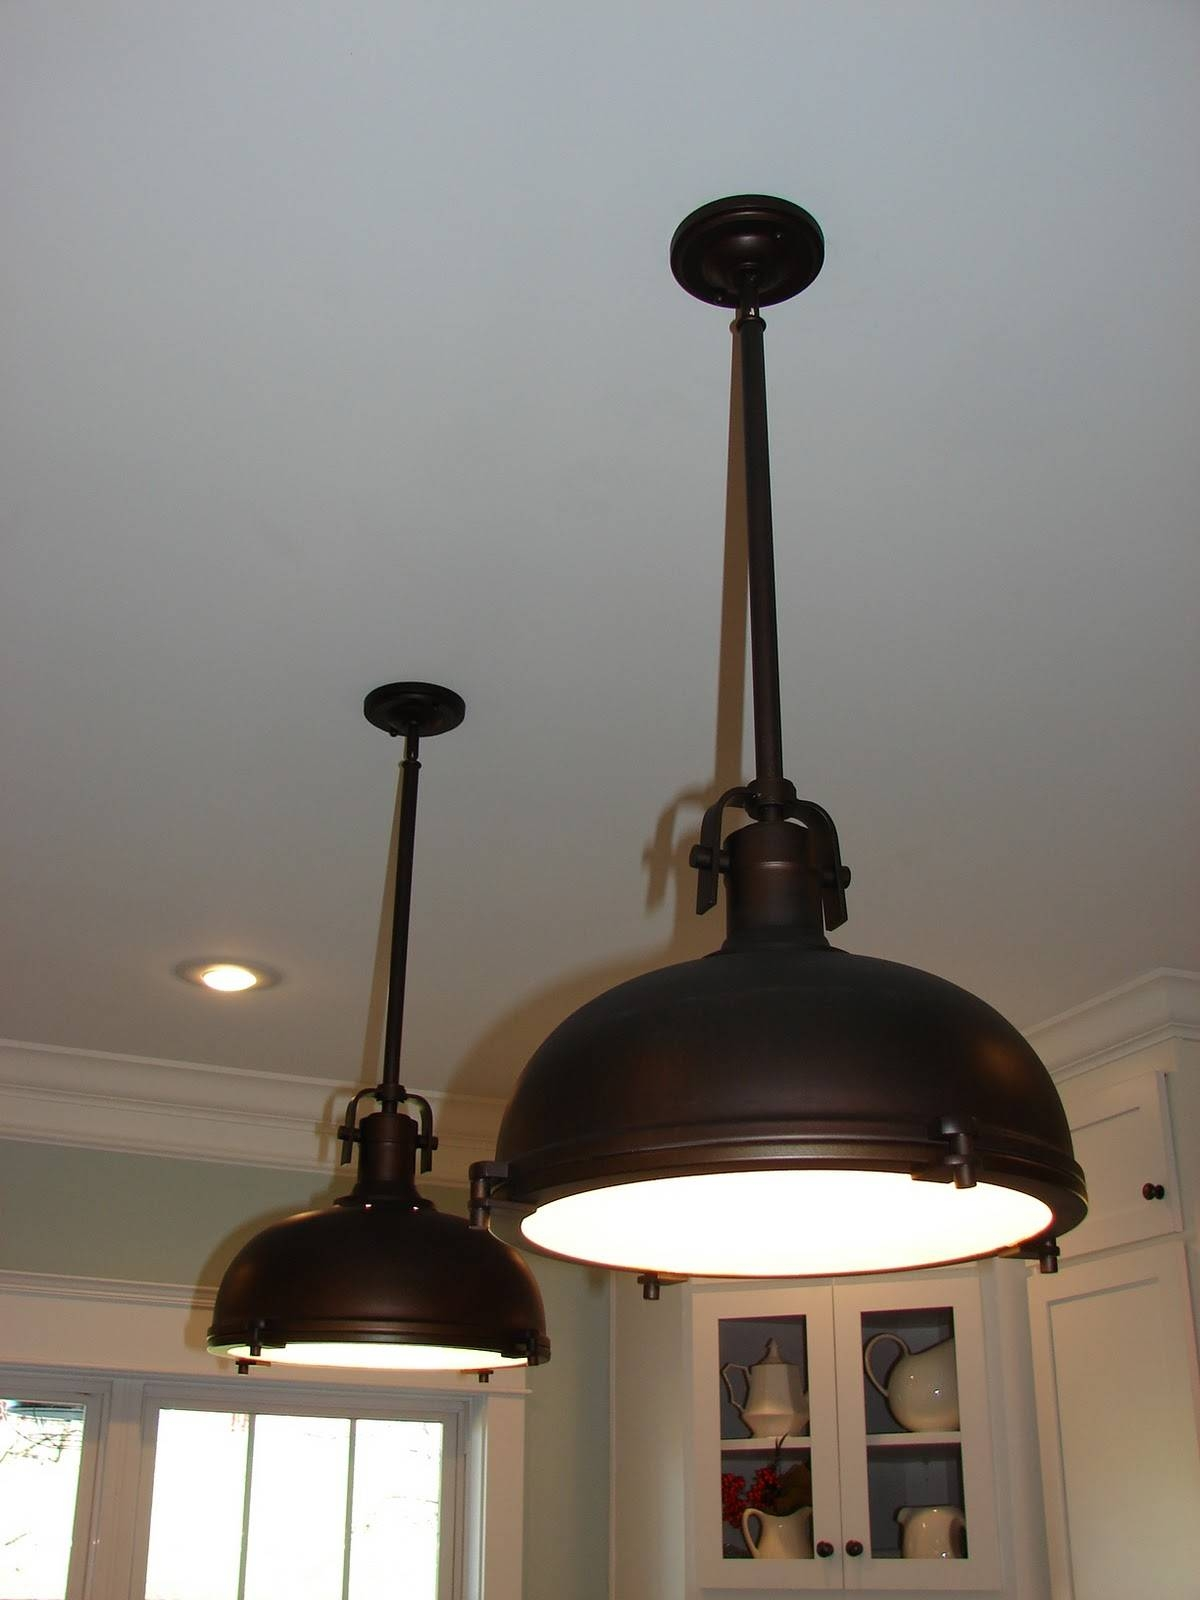 Industrial Pendant Lighting Canada Pictures – Home Furniture Ideas Intended For Canada Pendant Light Fixtures (View 7 of 15)